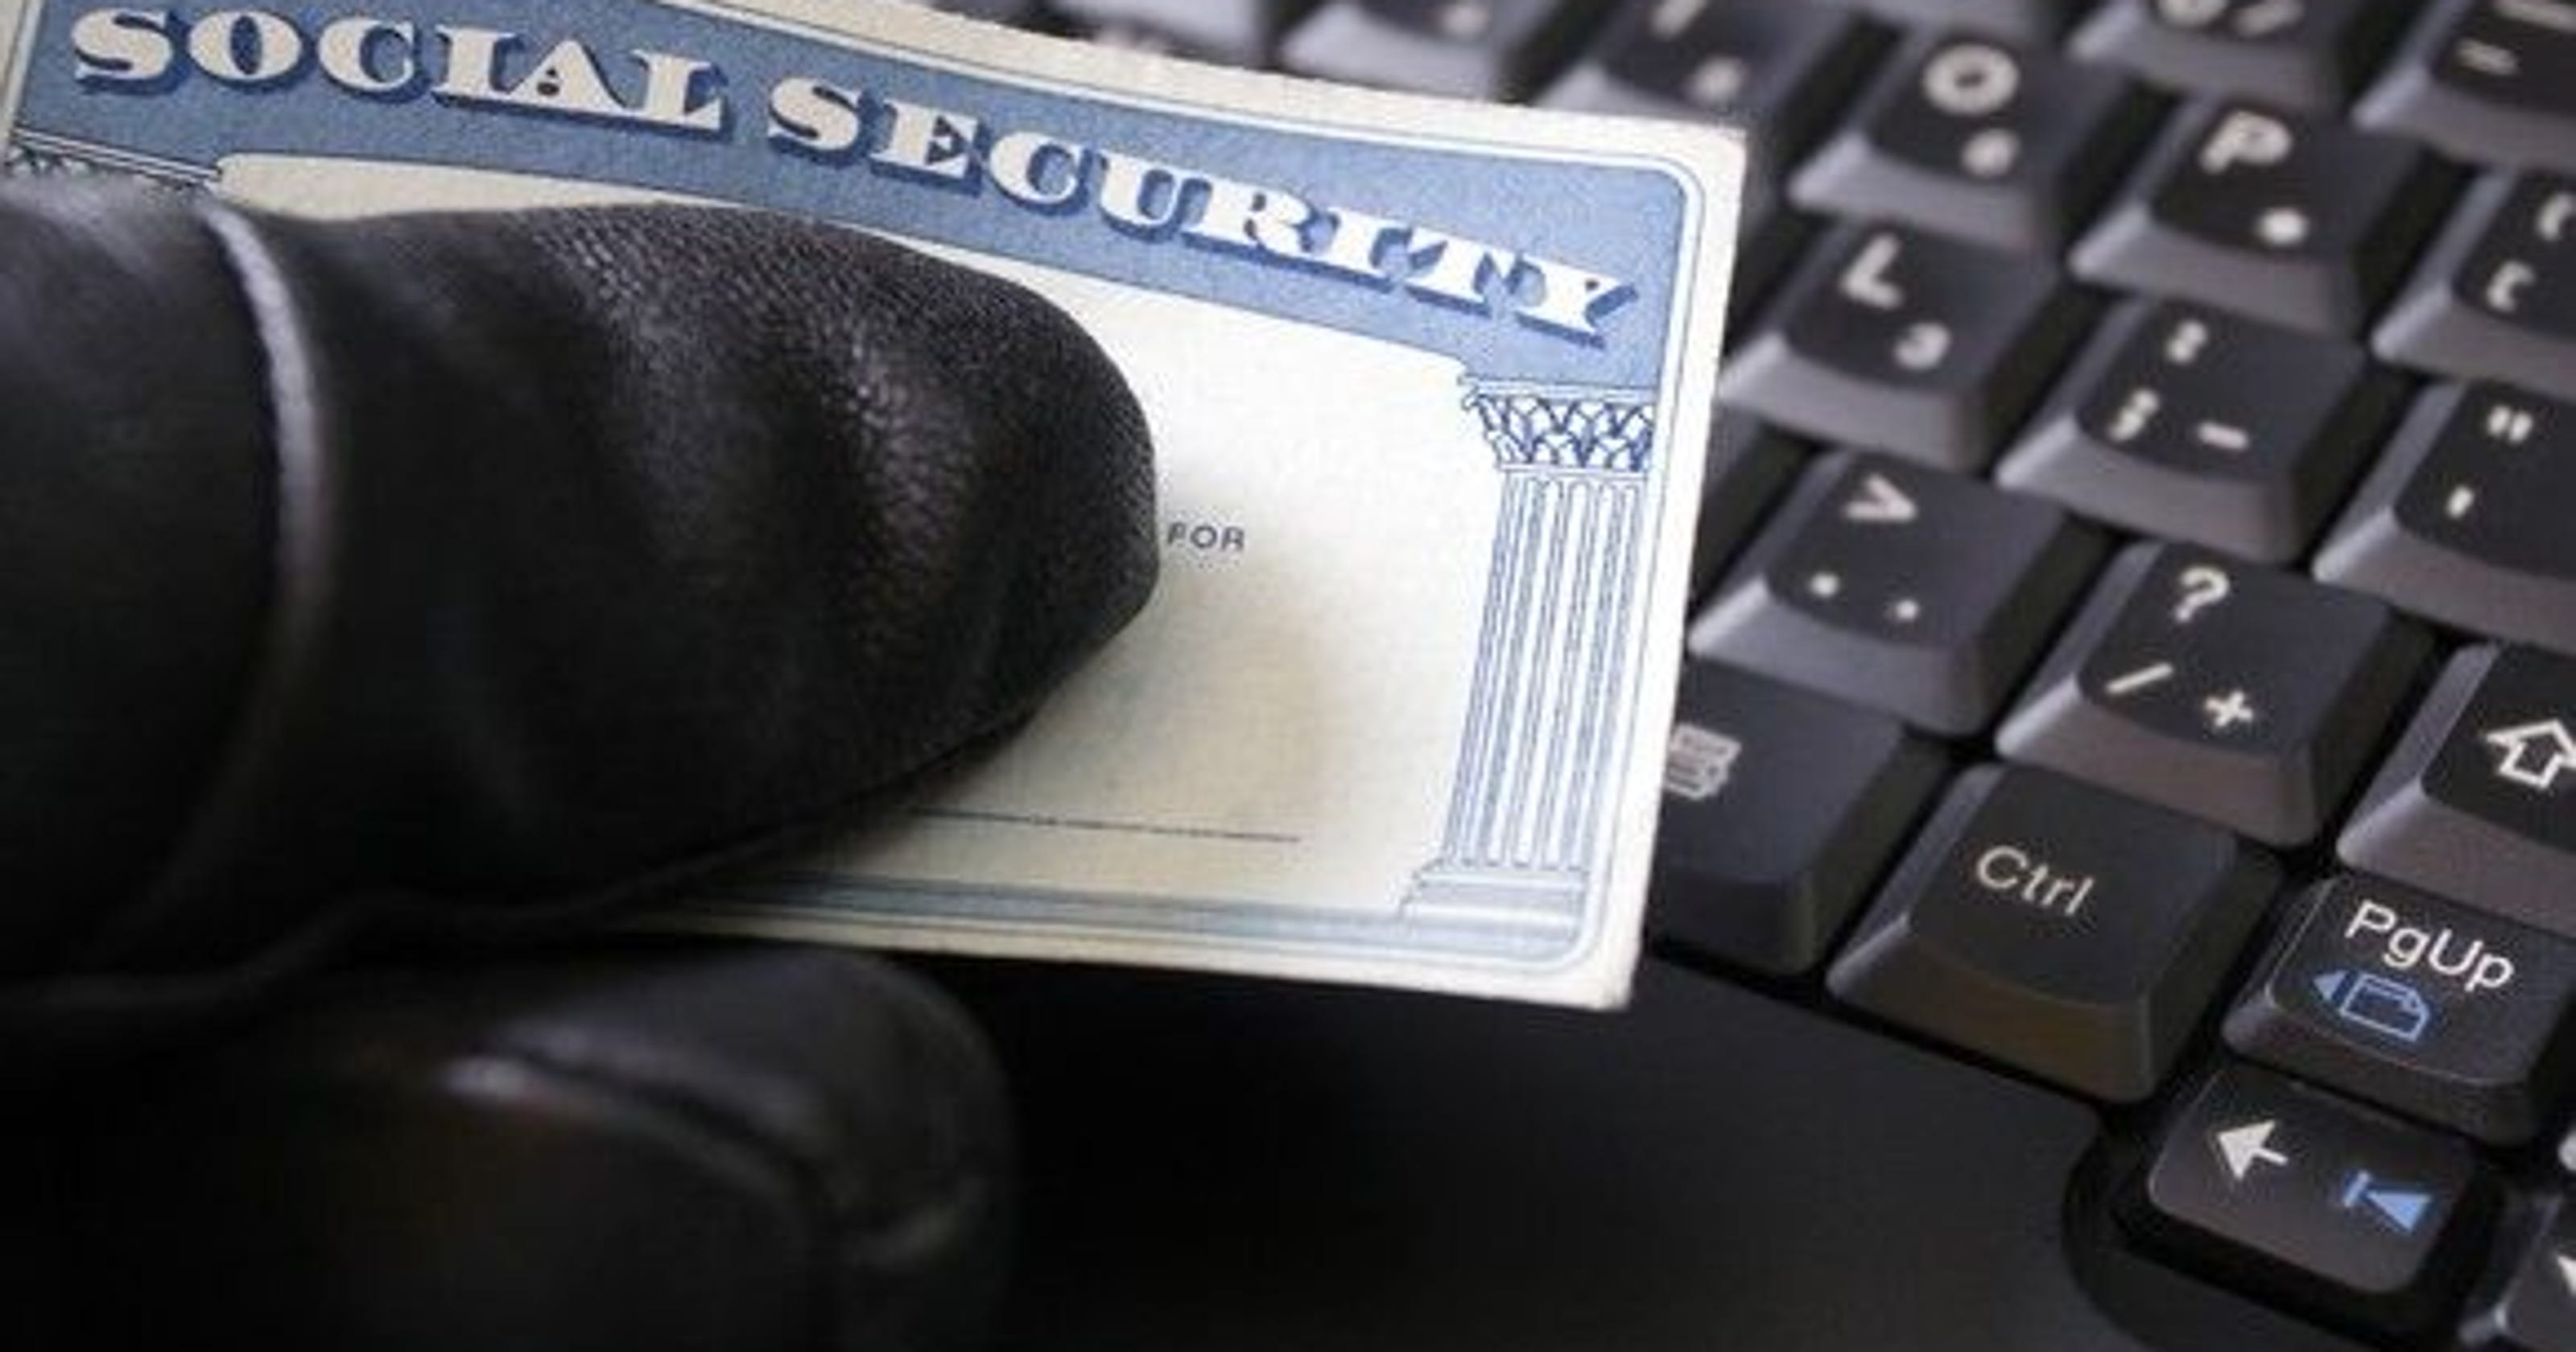 5 ways an identity thief can use your Social Security number